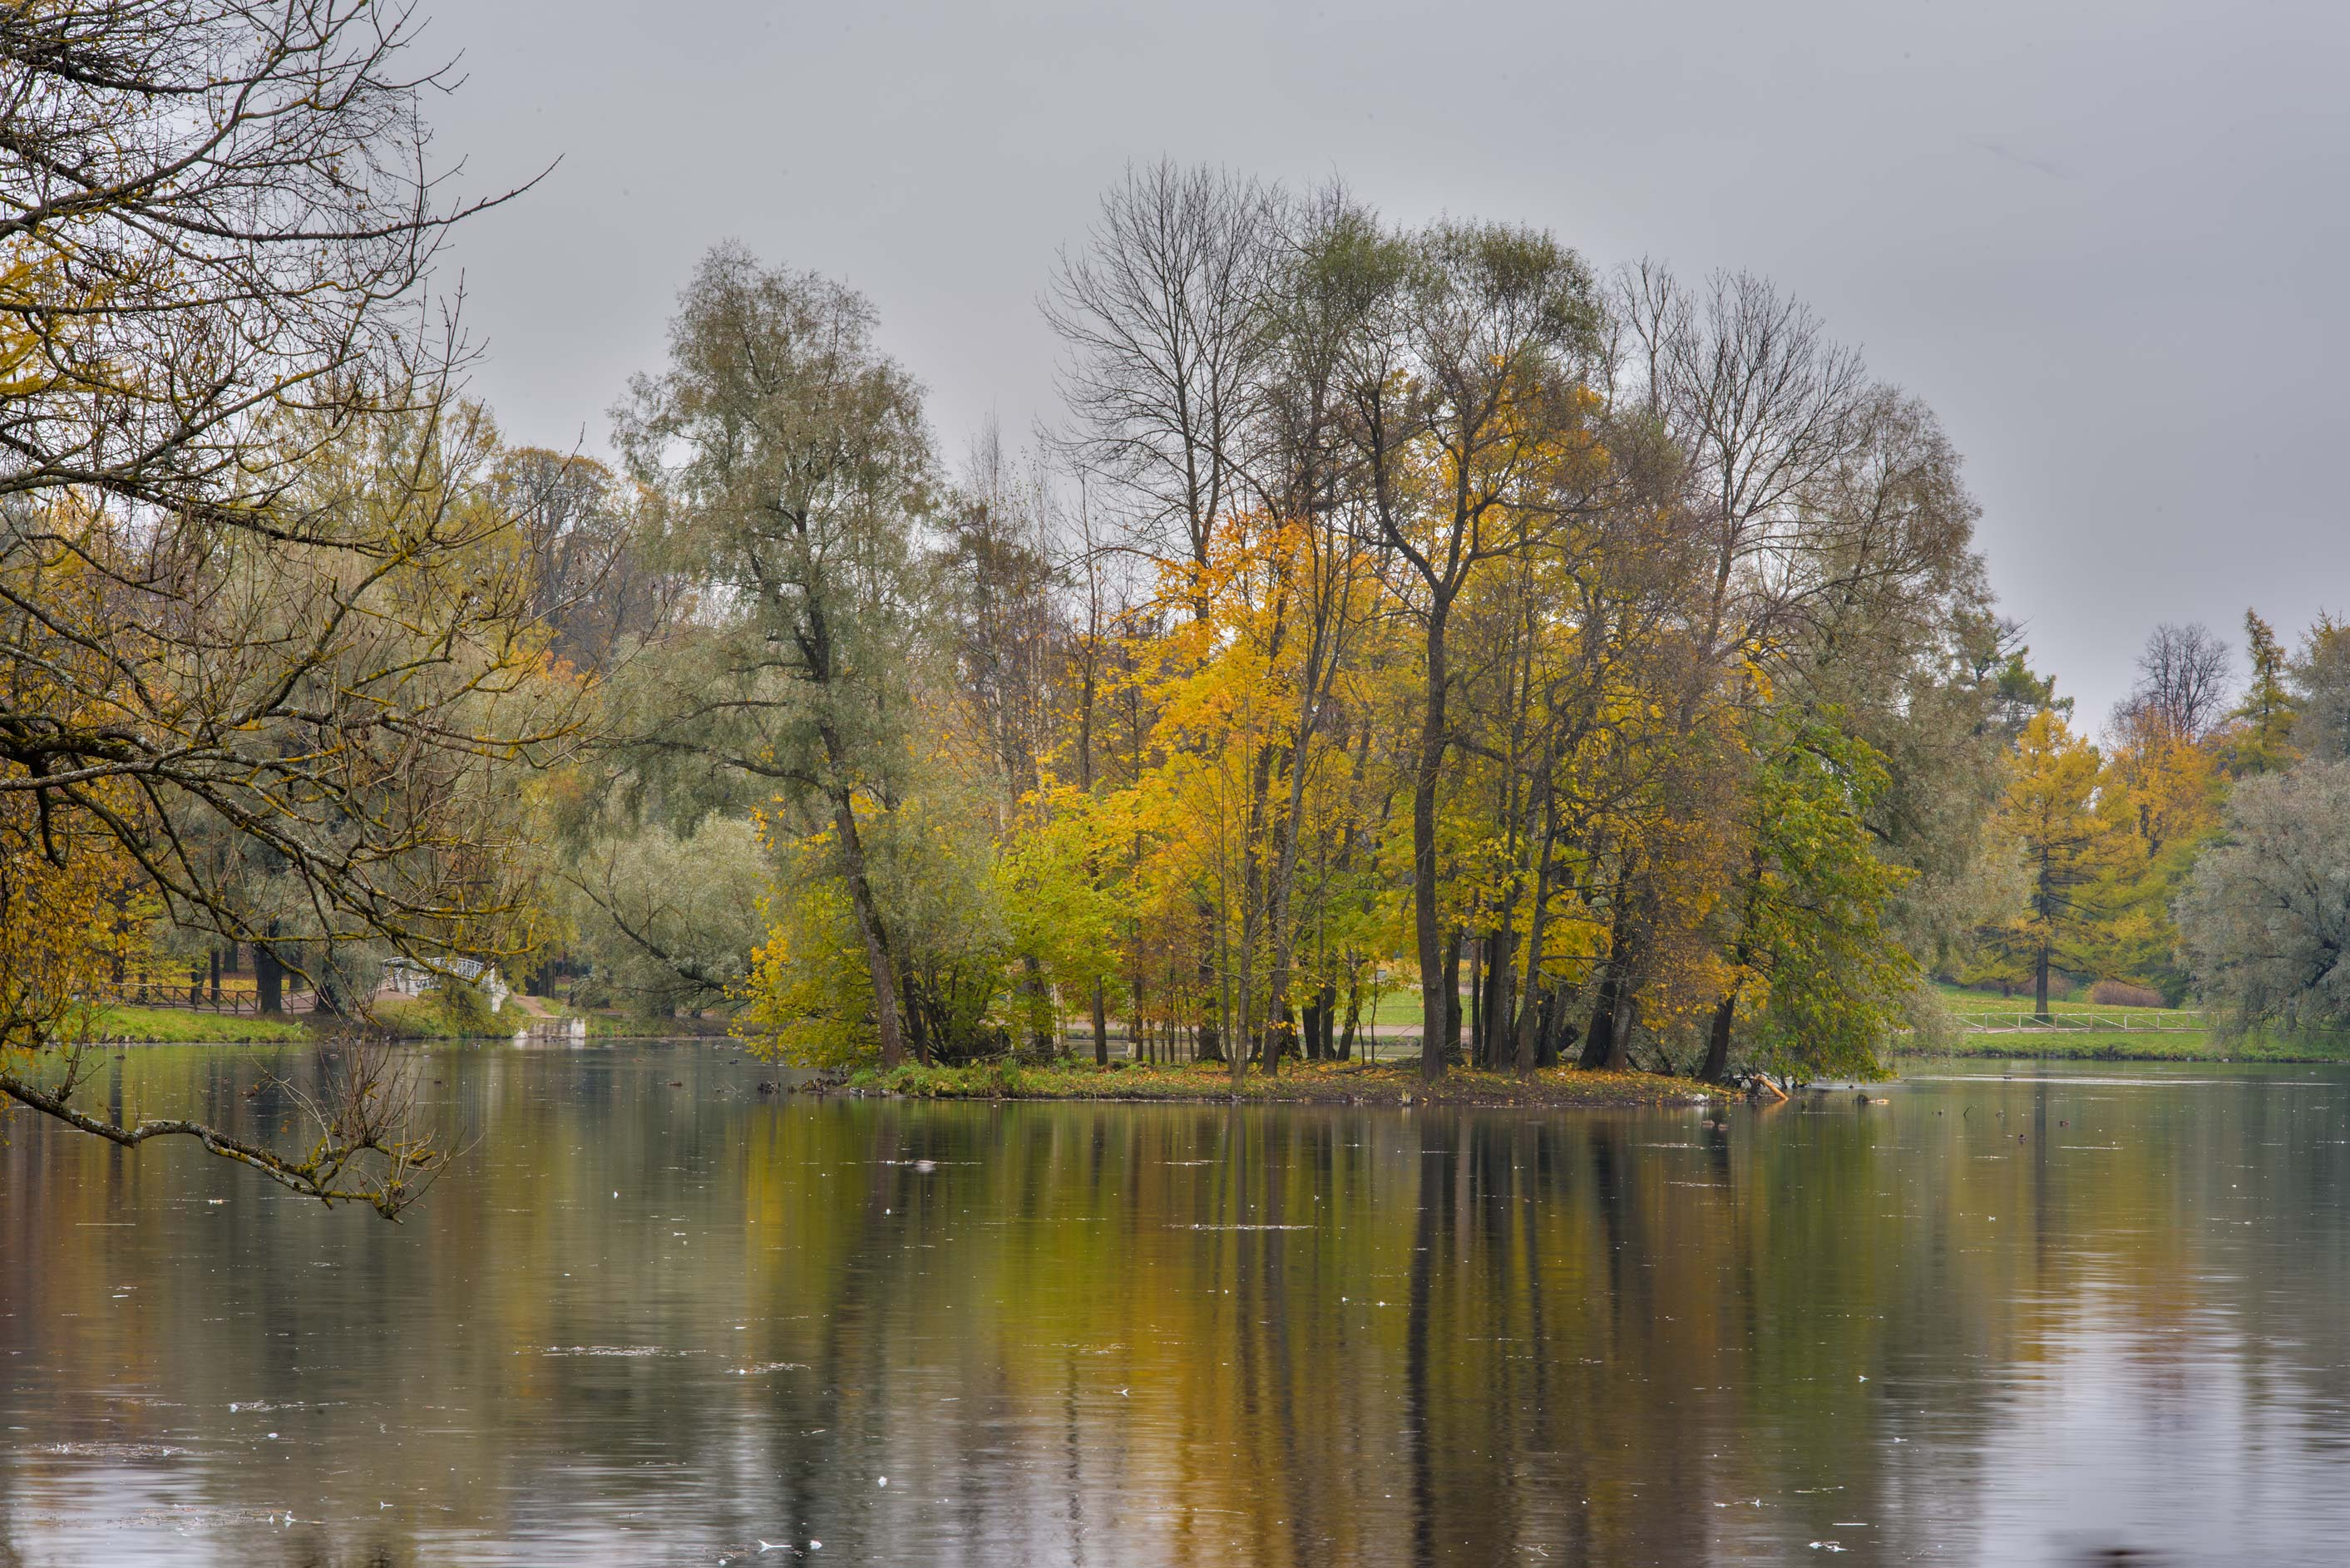 Crow Island in Gatchina Park. Gatchina, a suburb of St.Petersburg, Russia